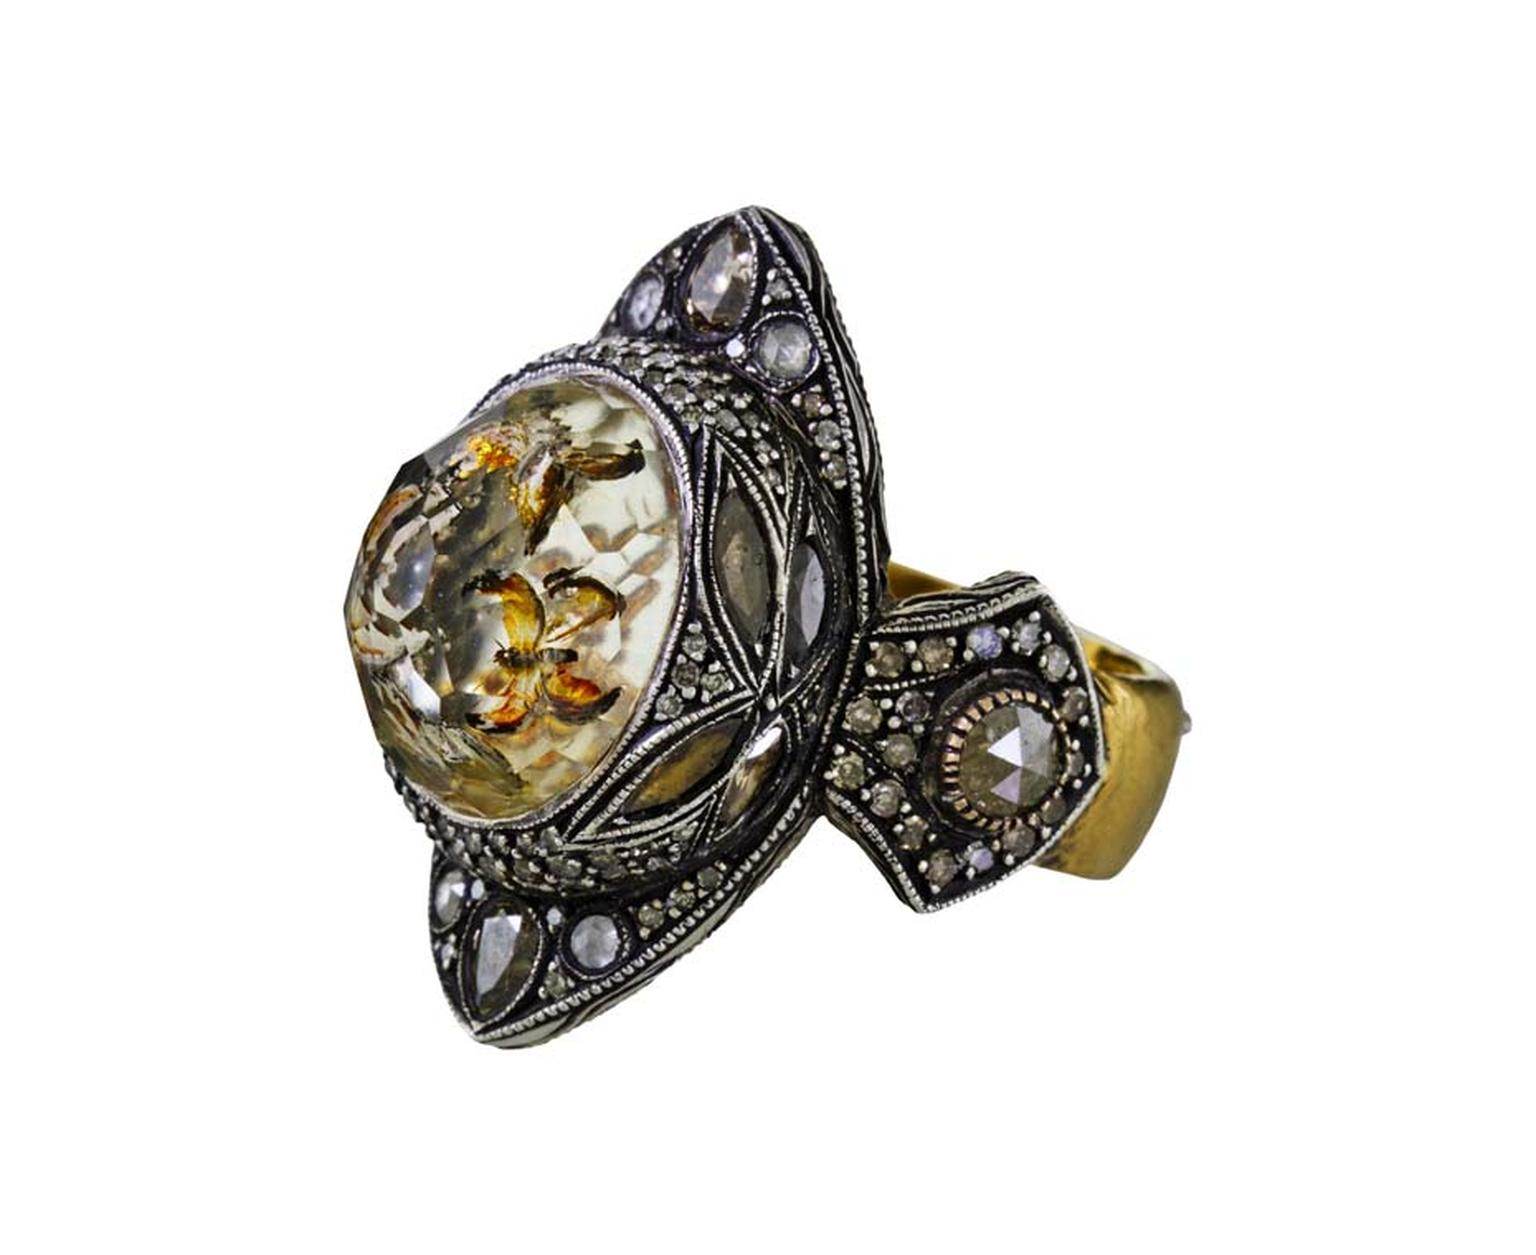 Sevan Bicakci Theodora Butterfly ring, available from online fine jewelry store Twist.